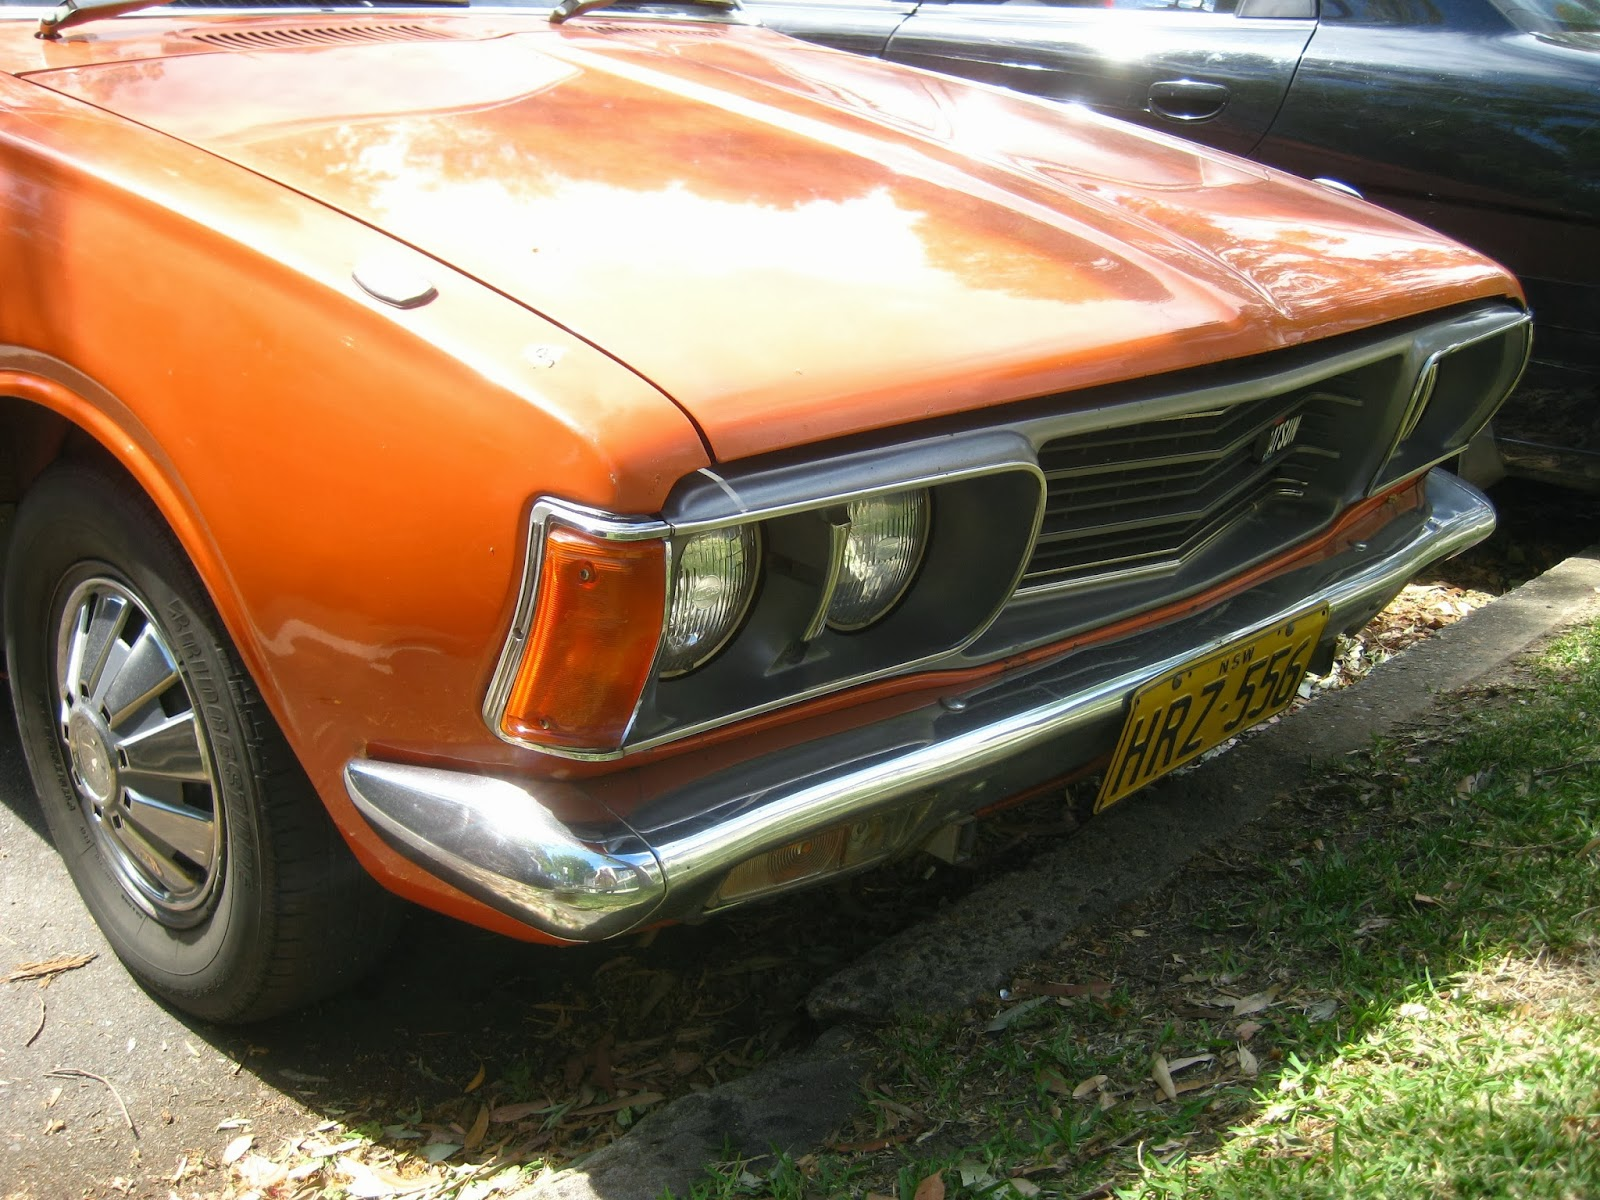 aussie old parked cars 1975 datsun 180b wagon 610